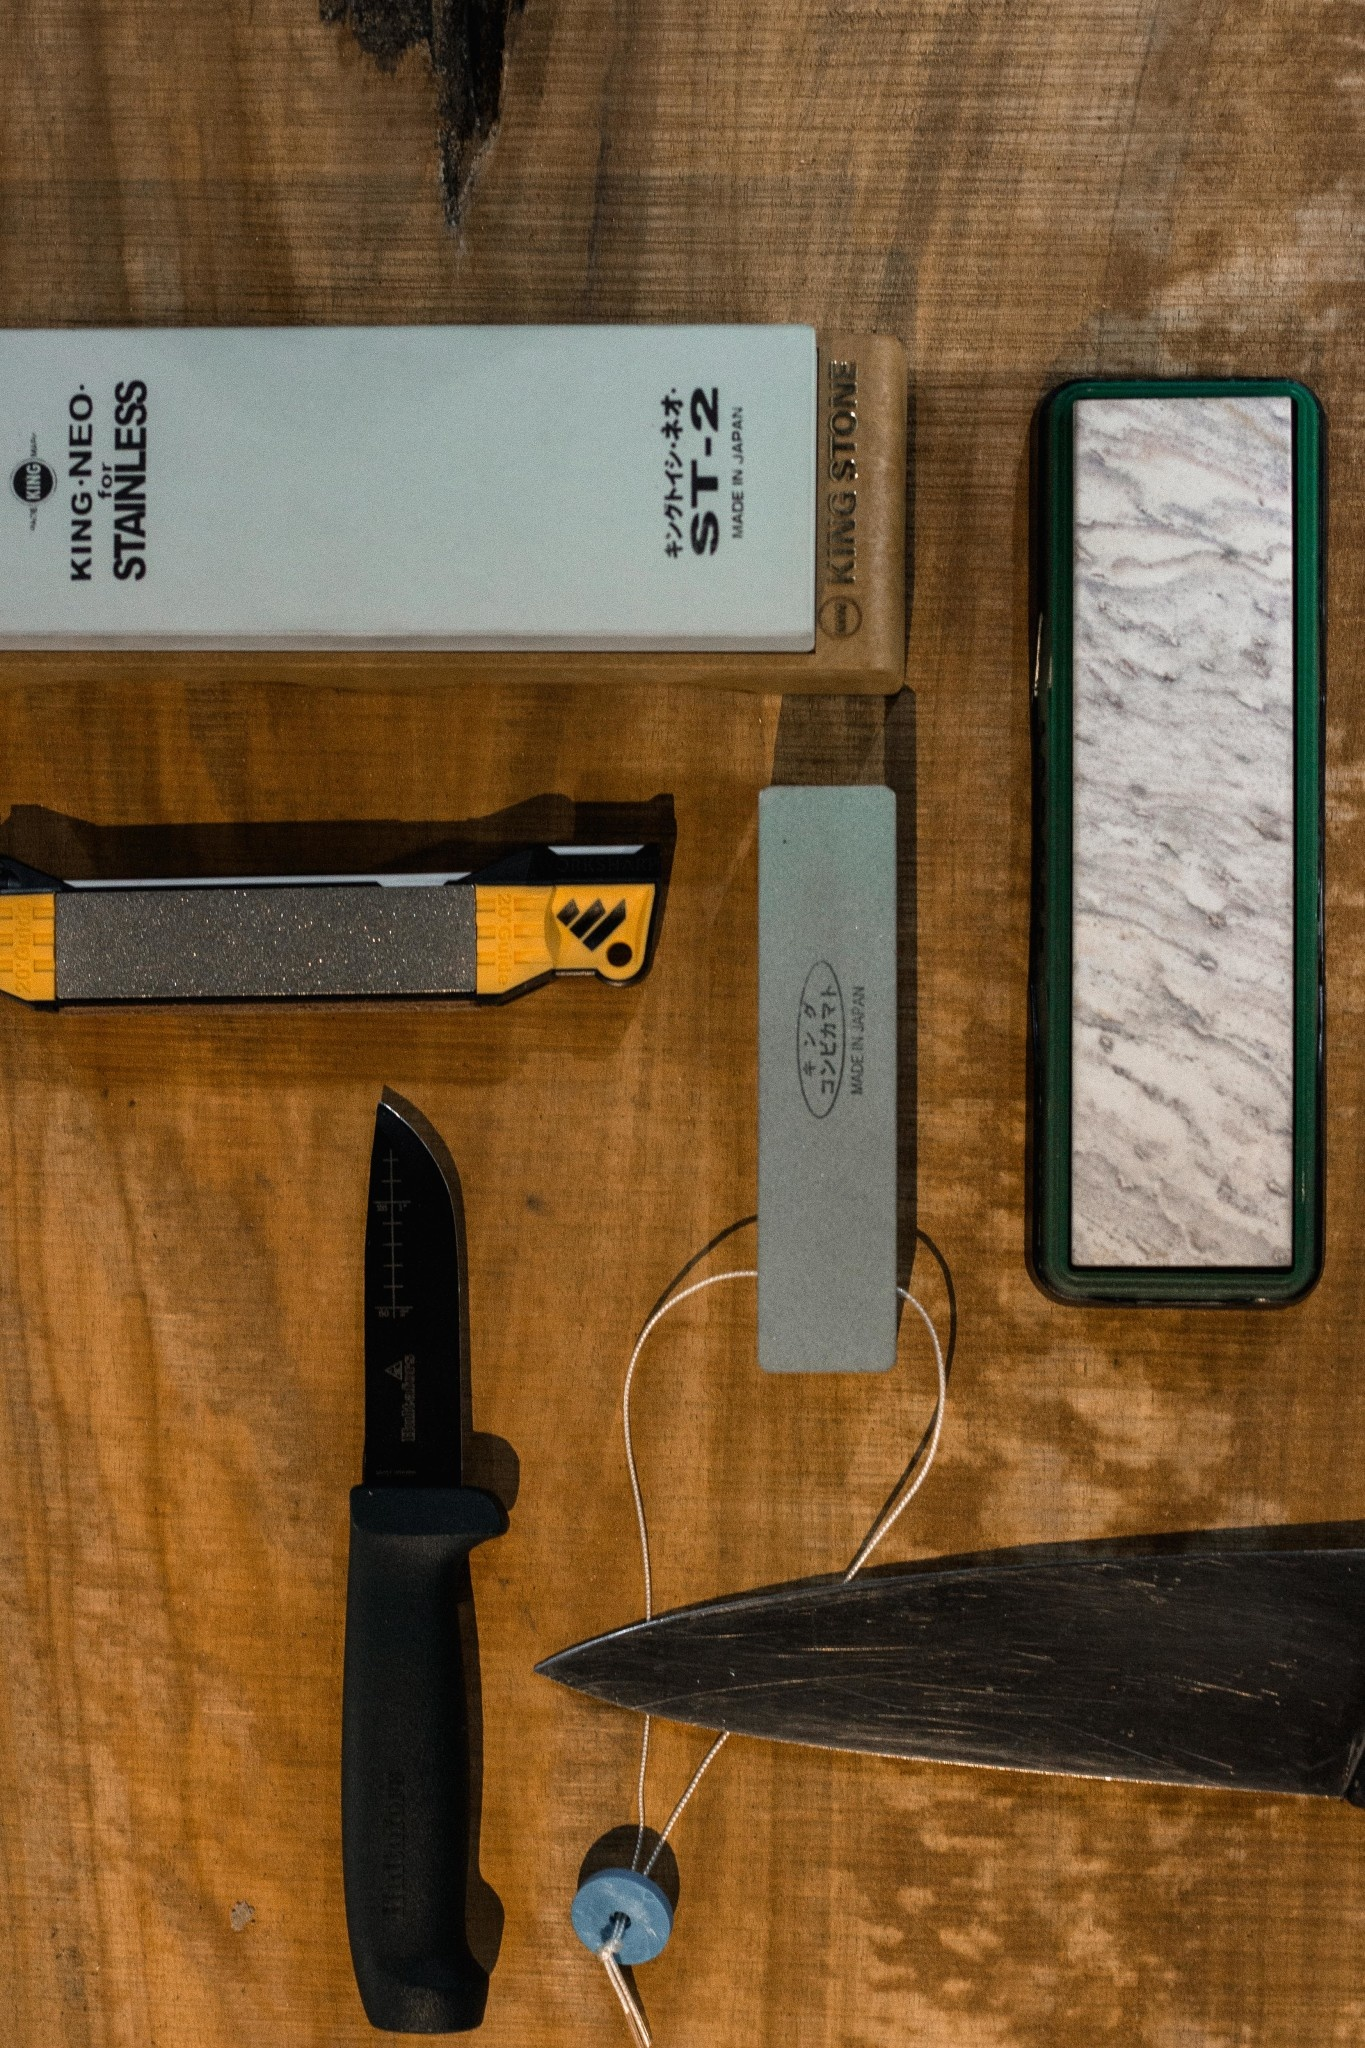 JANUARY KNIFE SHARPENING COURSE